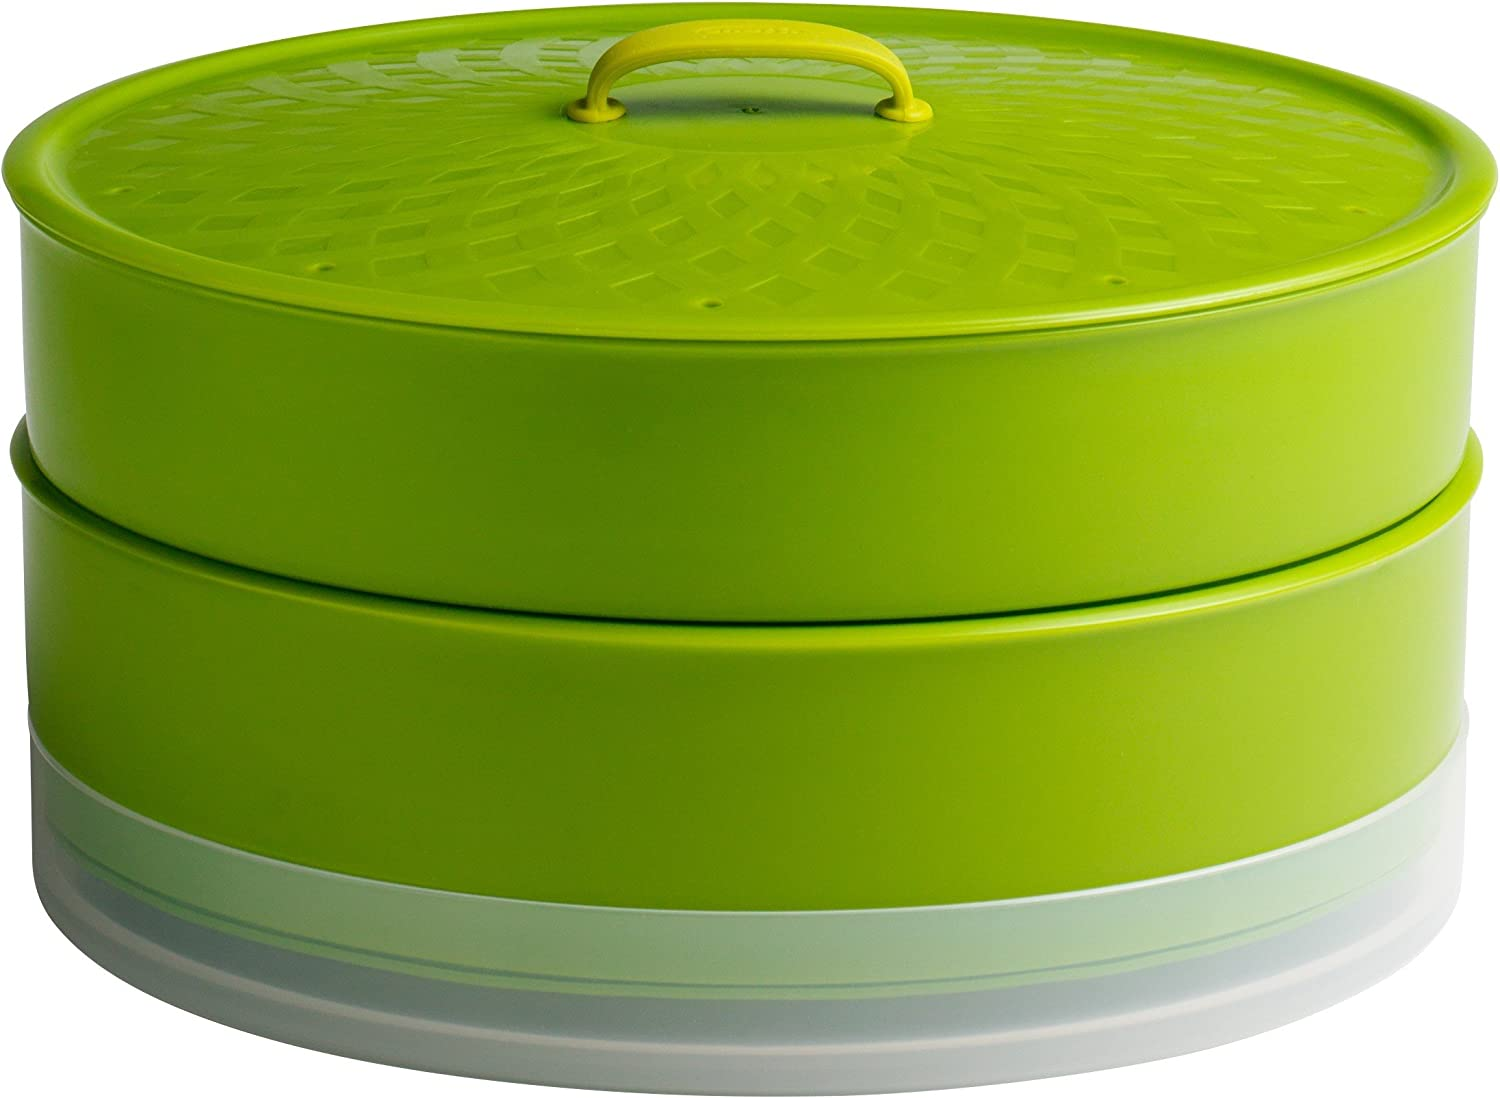 Chef'n SteamSum Stackable Outlet ☆ Free Shipping Stovetop Wok 10- Microwave Trust or Steamer